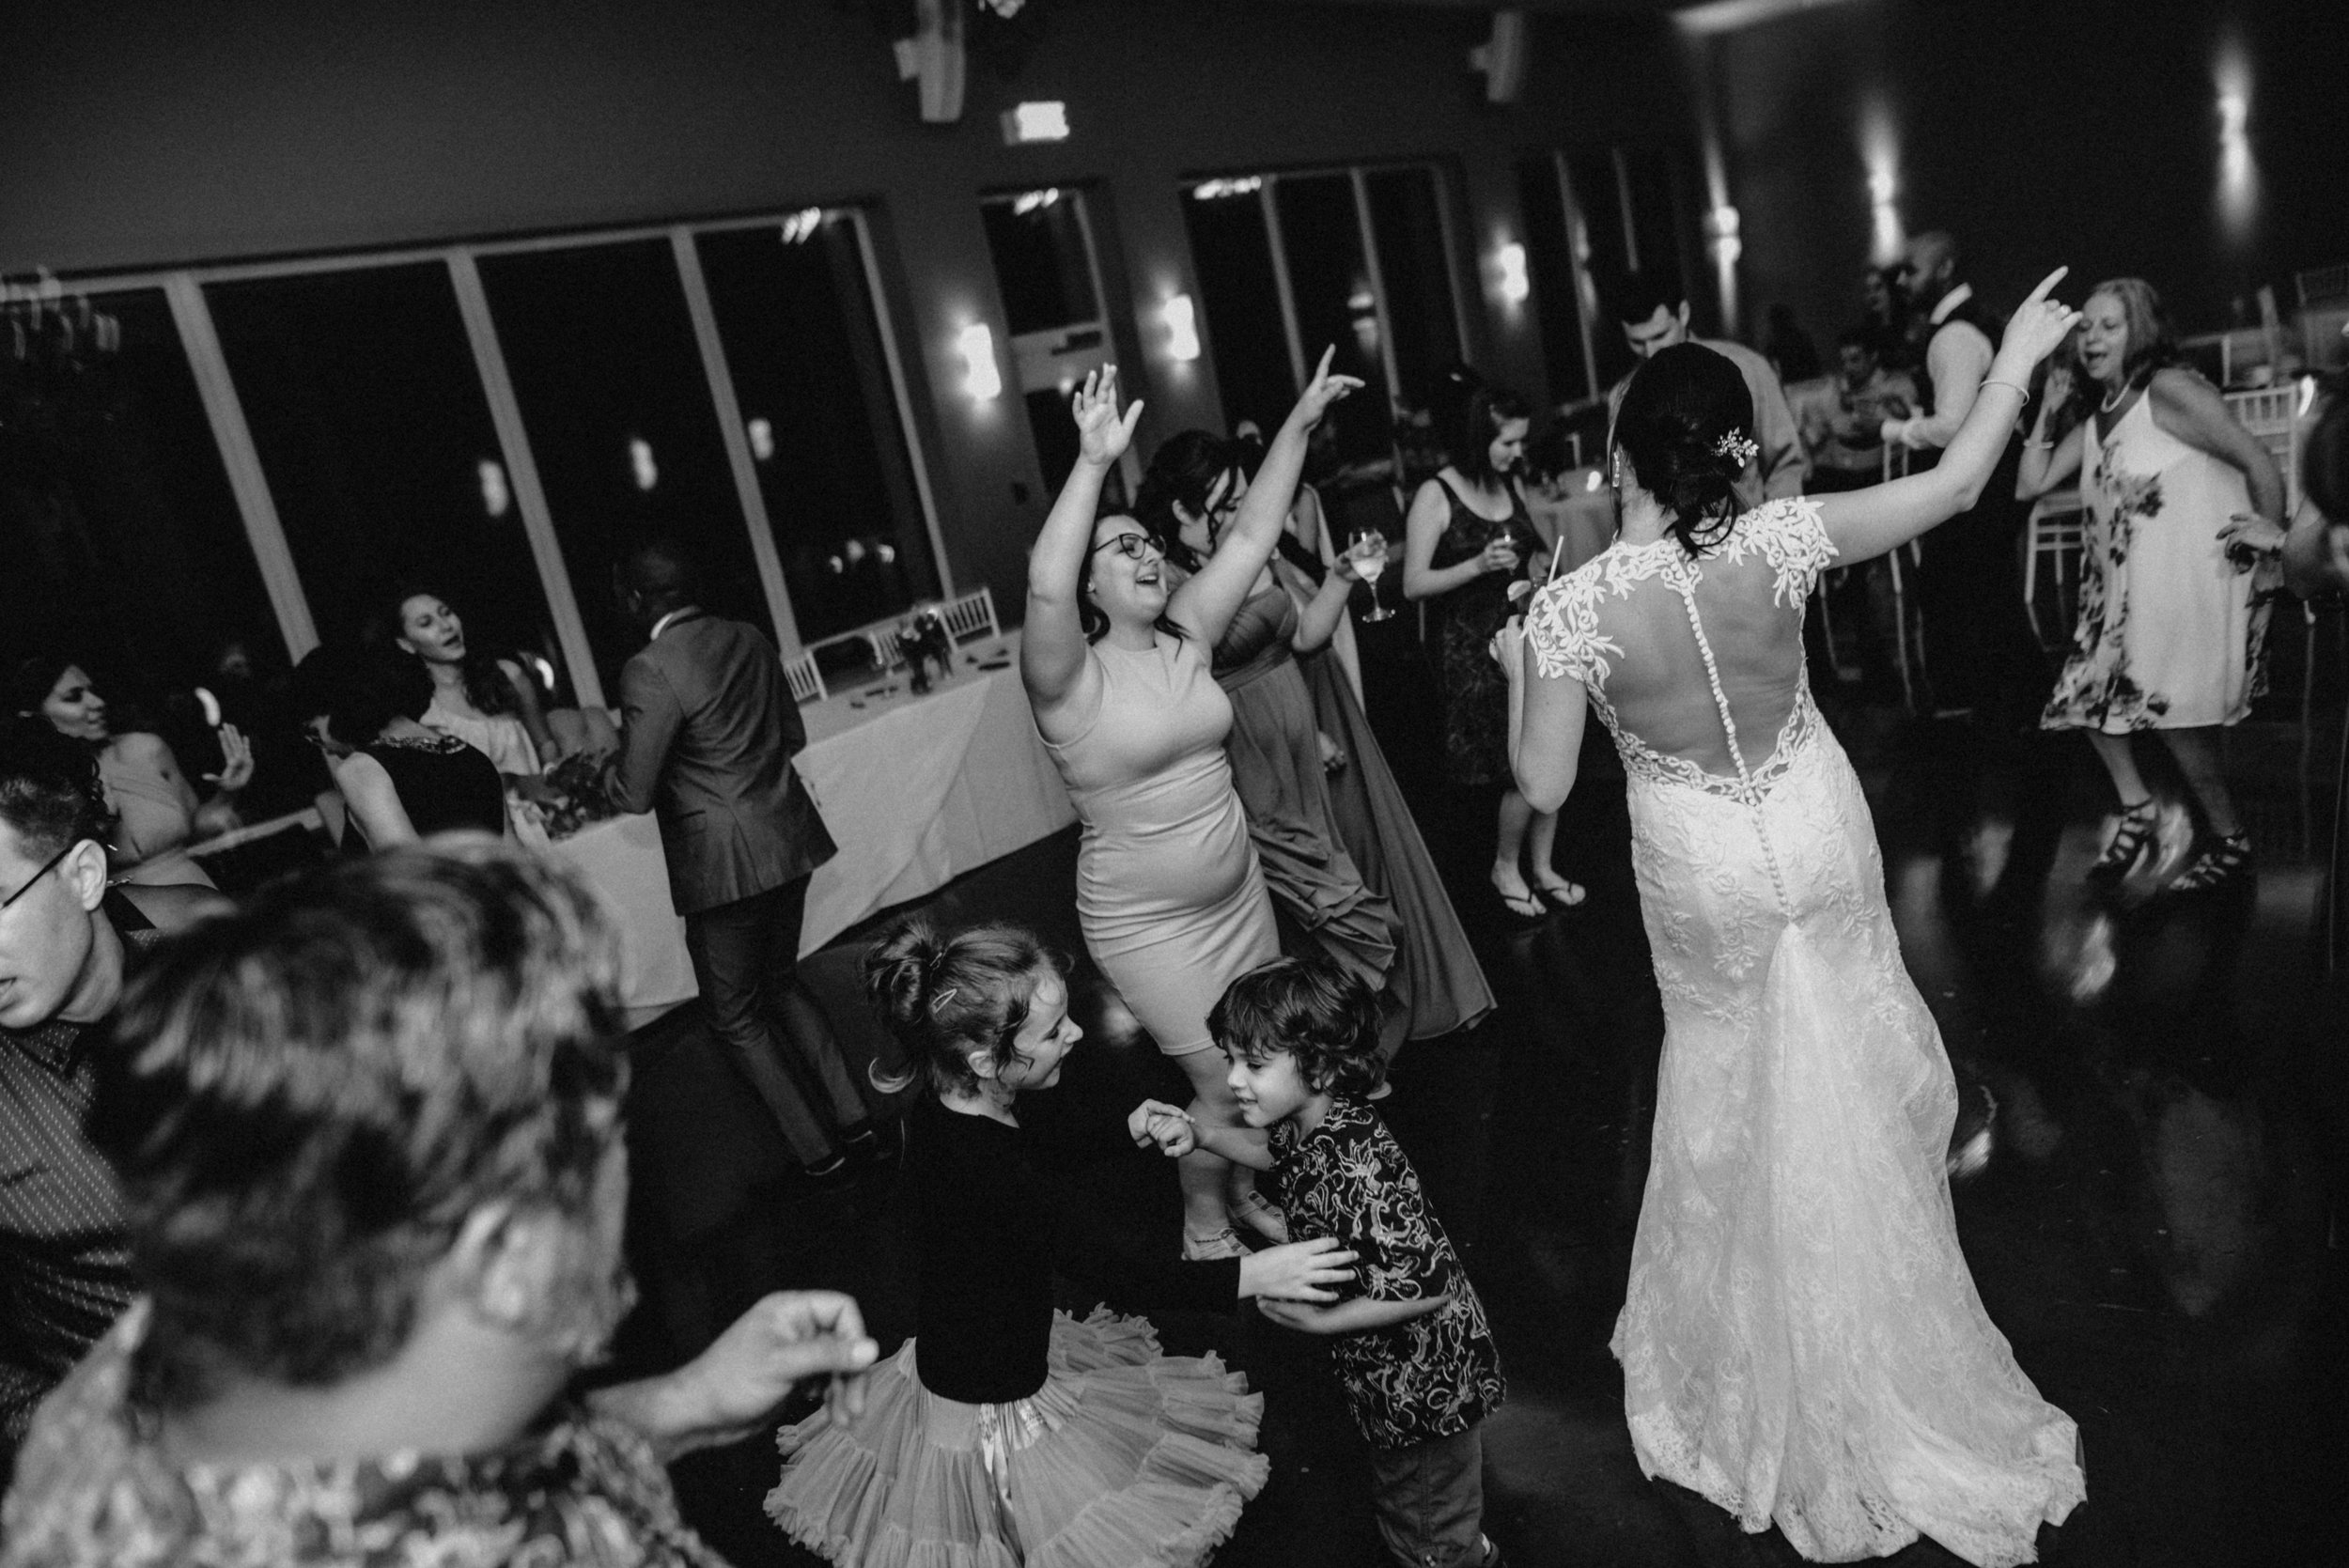 photographe_gatineau_mariage_ottawa_photographer_wedding_natasha_liard_photo_documentary_candid_lifestyle   (37).jpg